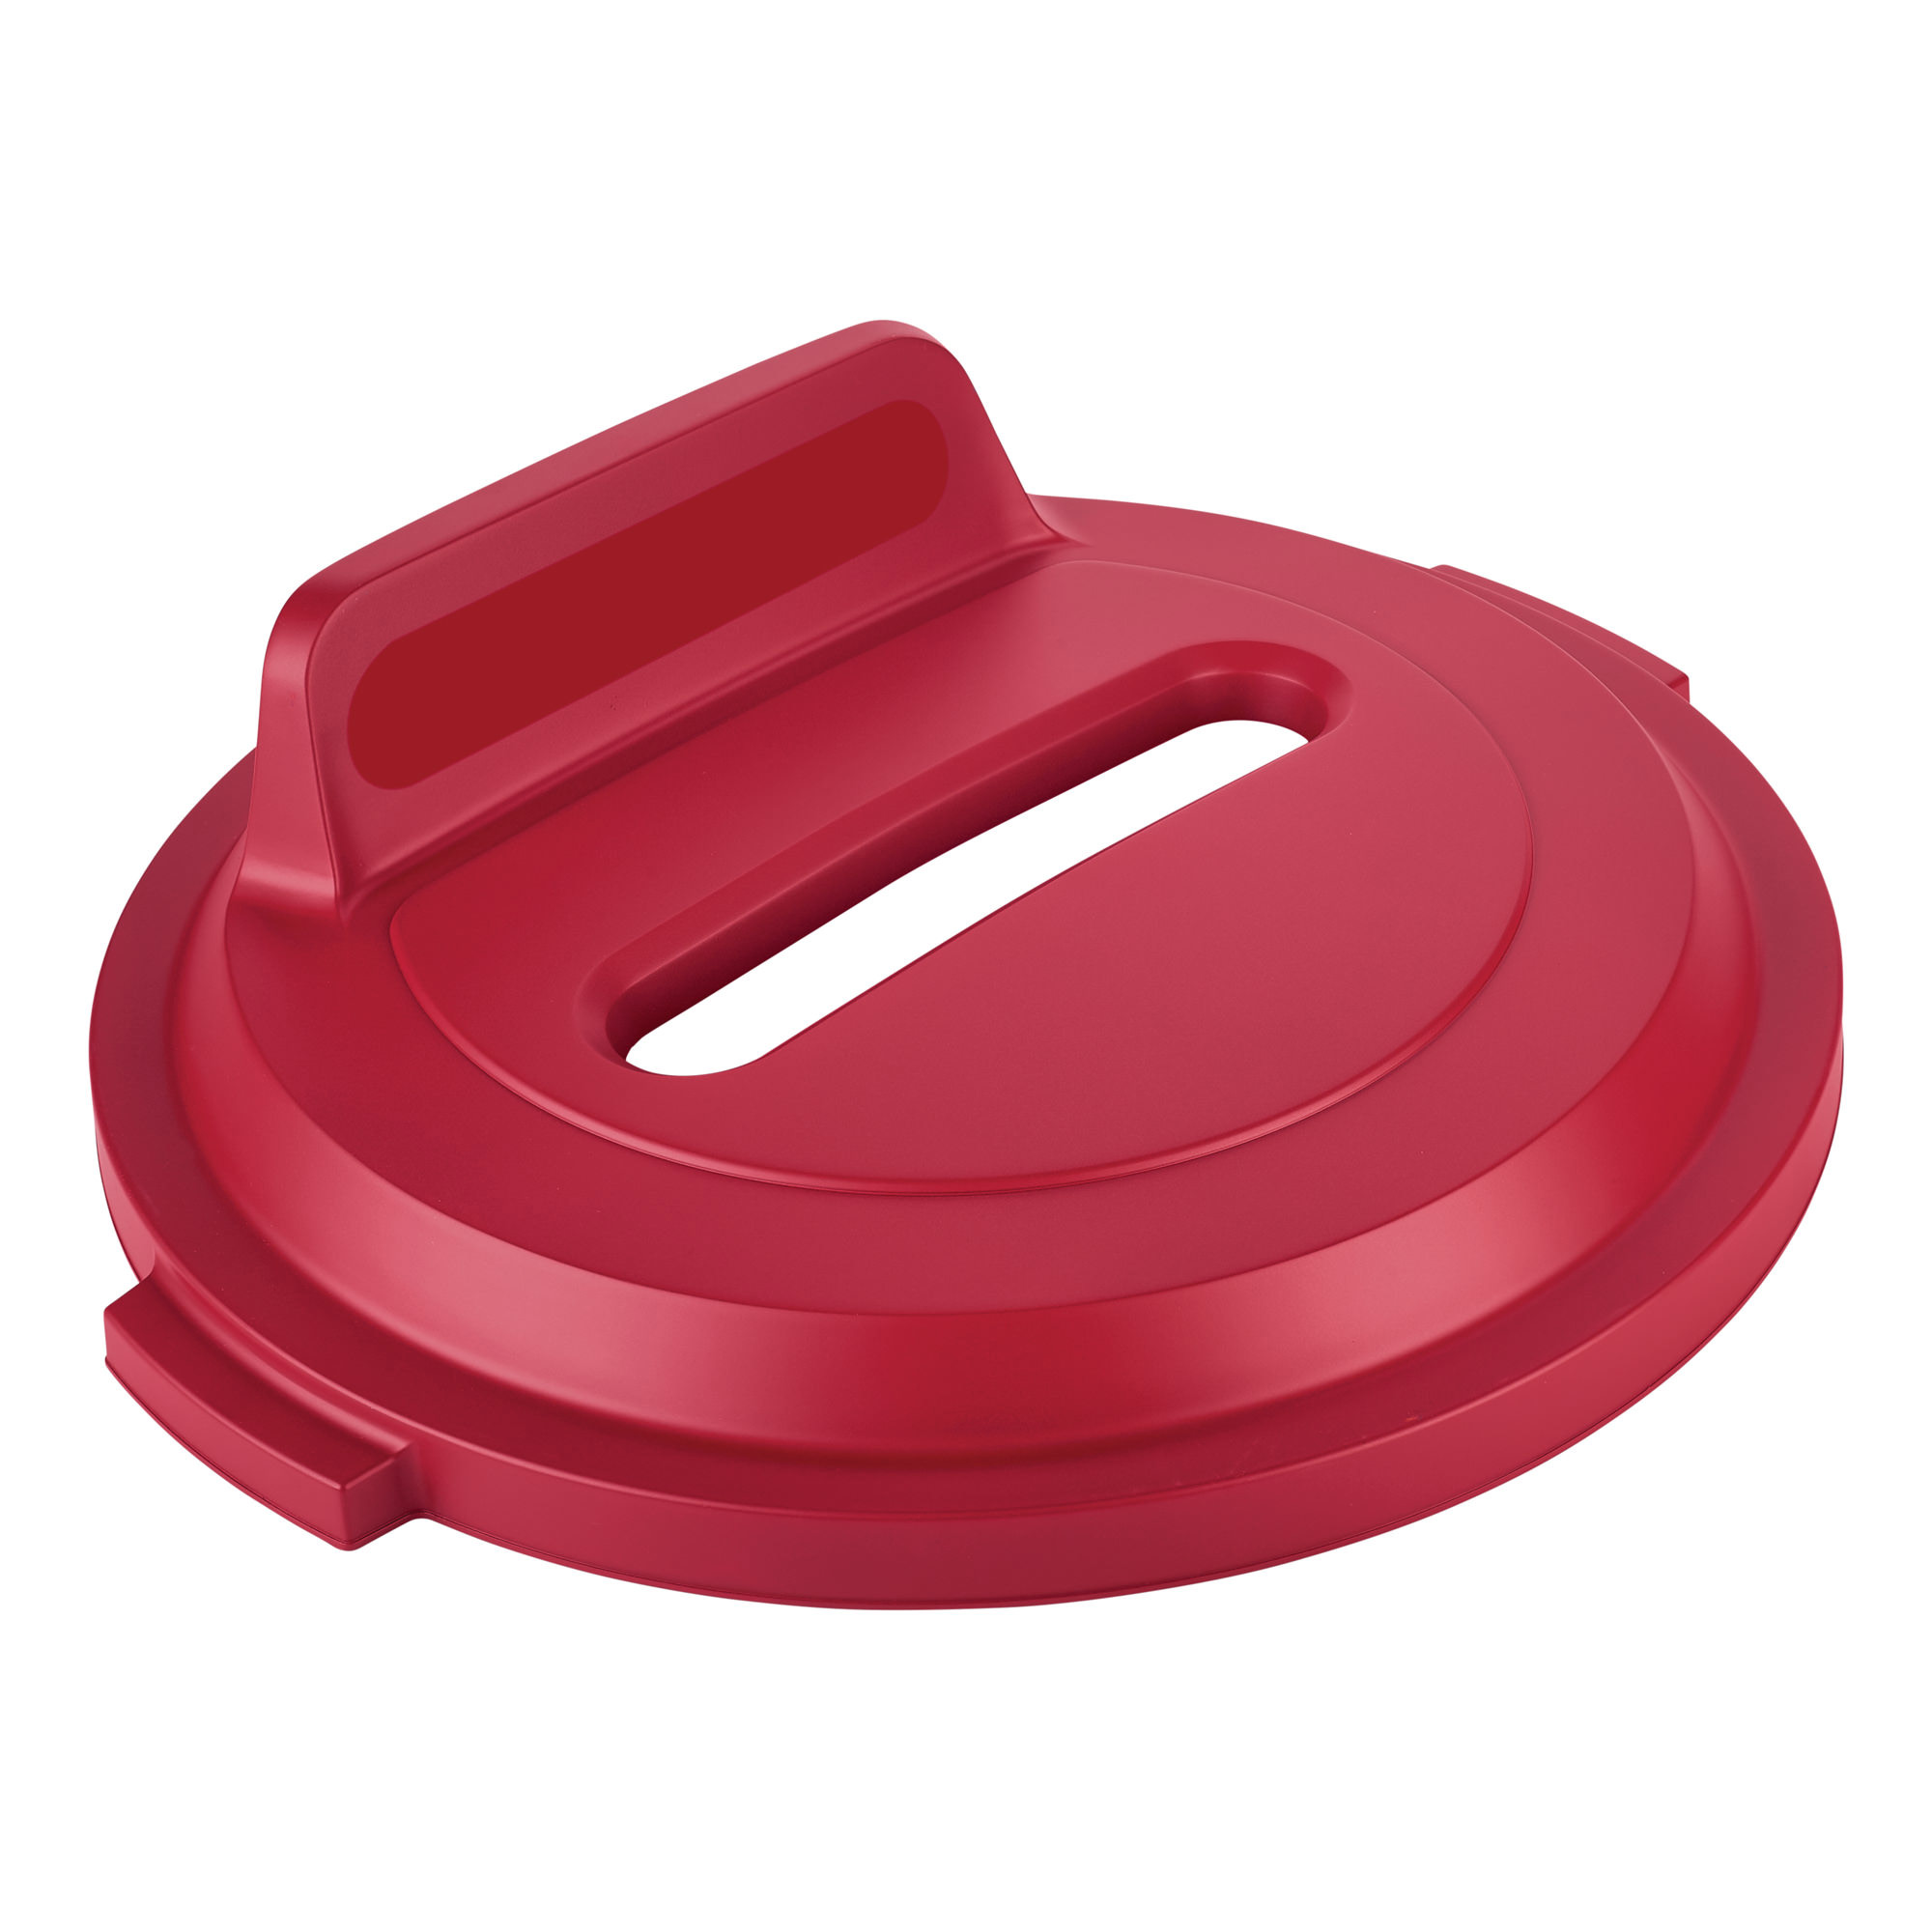 Rubbermaid Commercial Products 2018166 trash receptacle lid / top